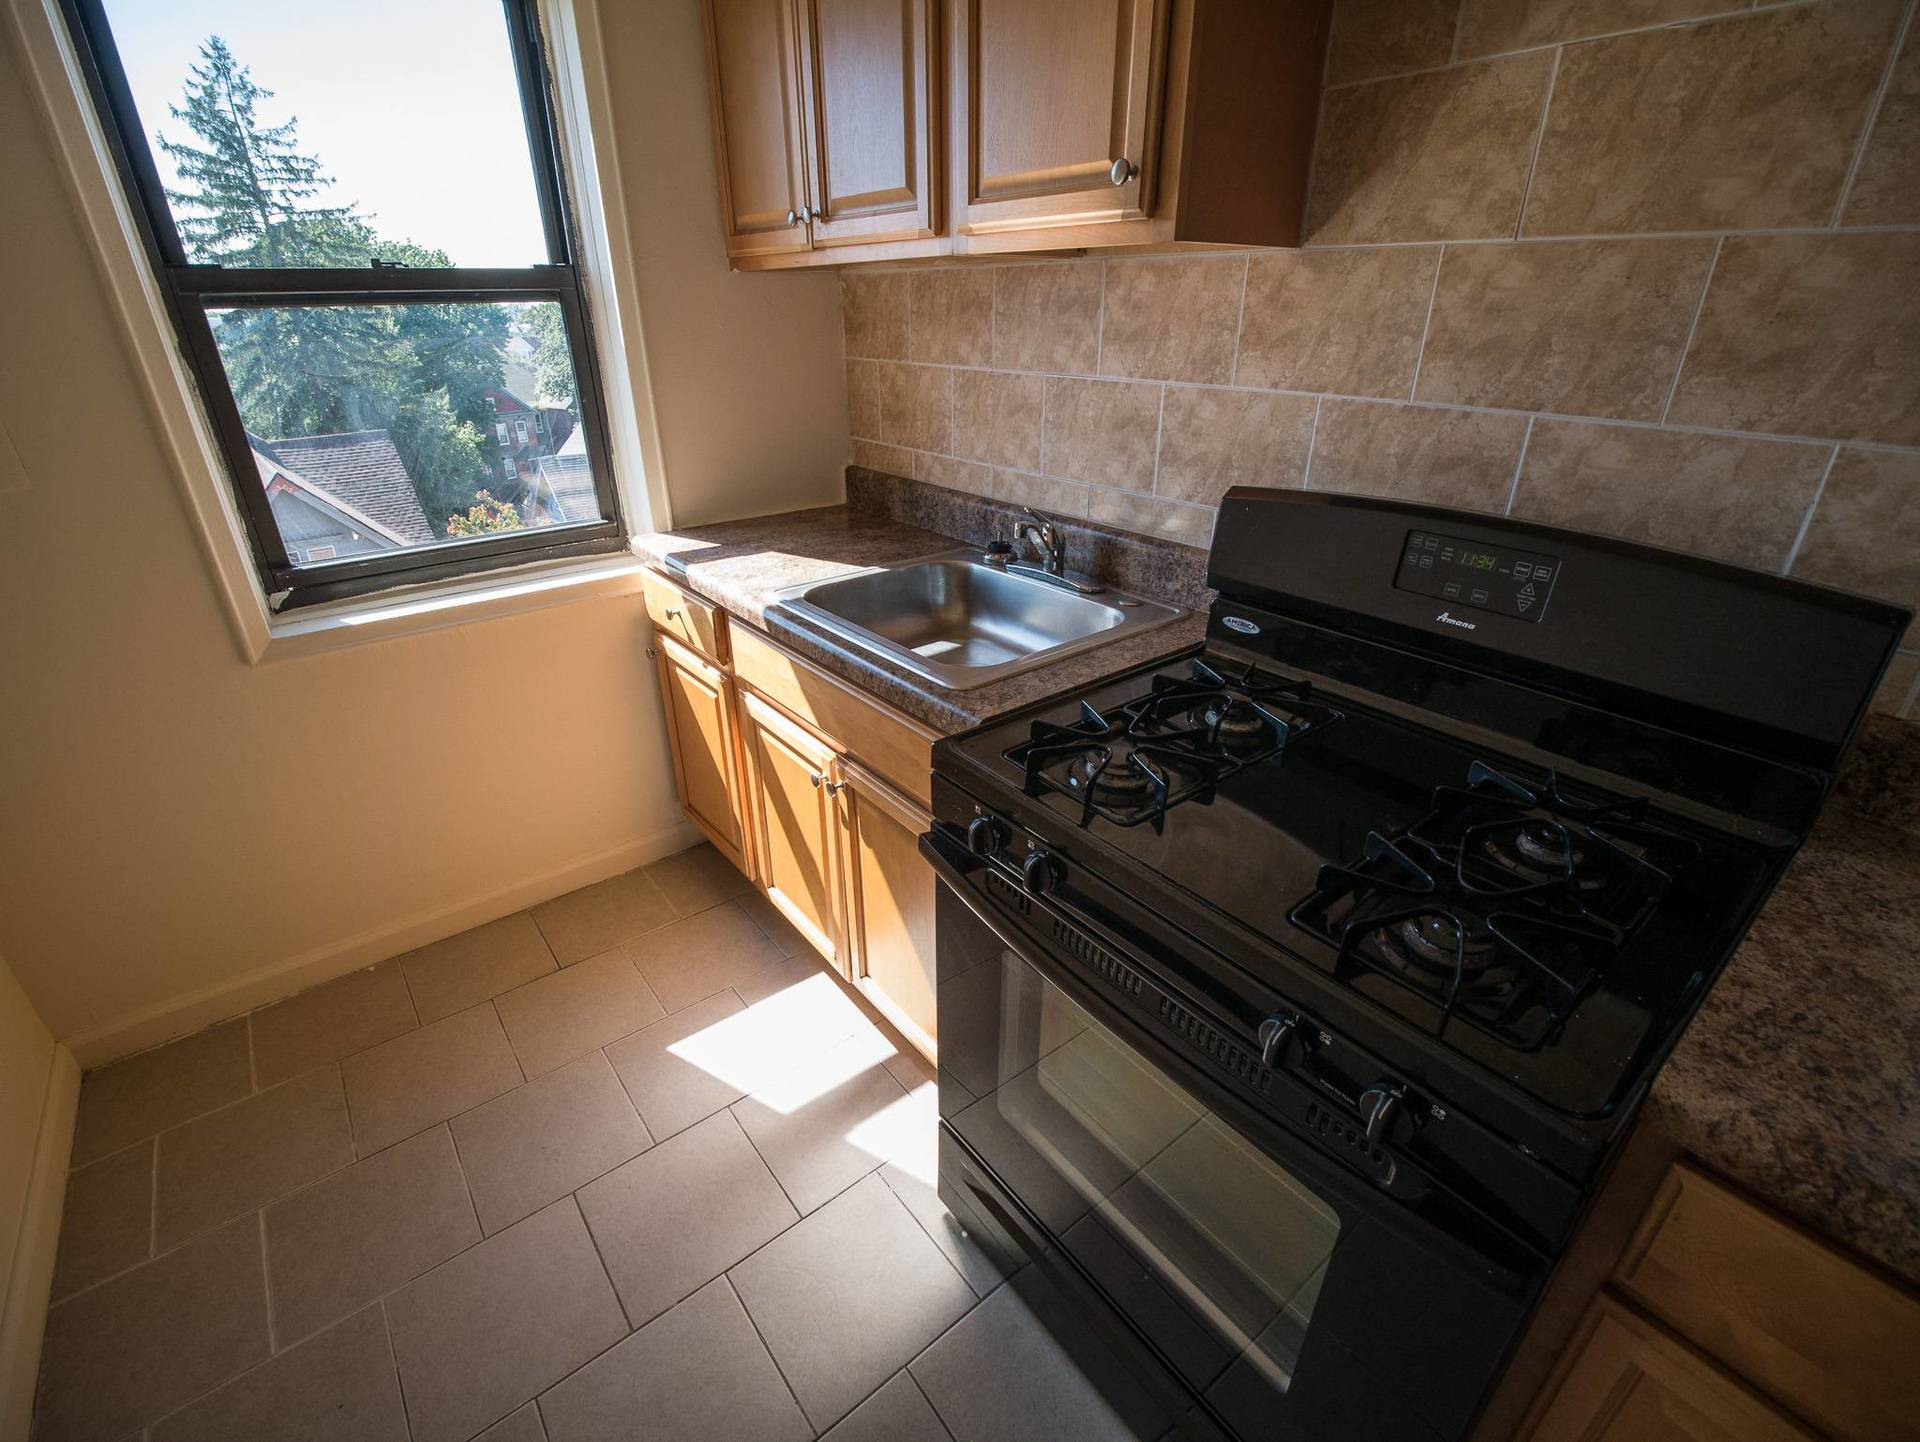 apartments for rent | stratford, bridgeport & fairfield